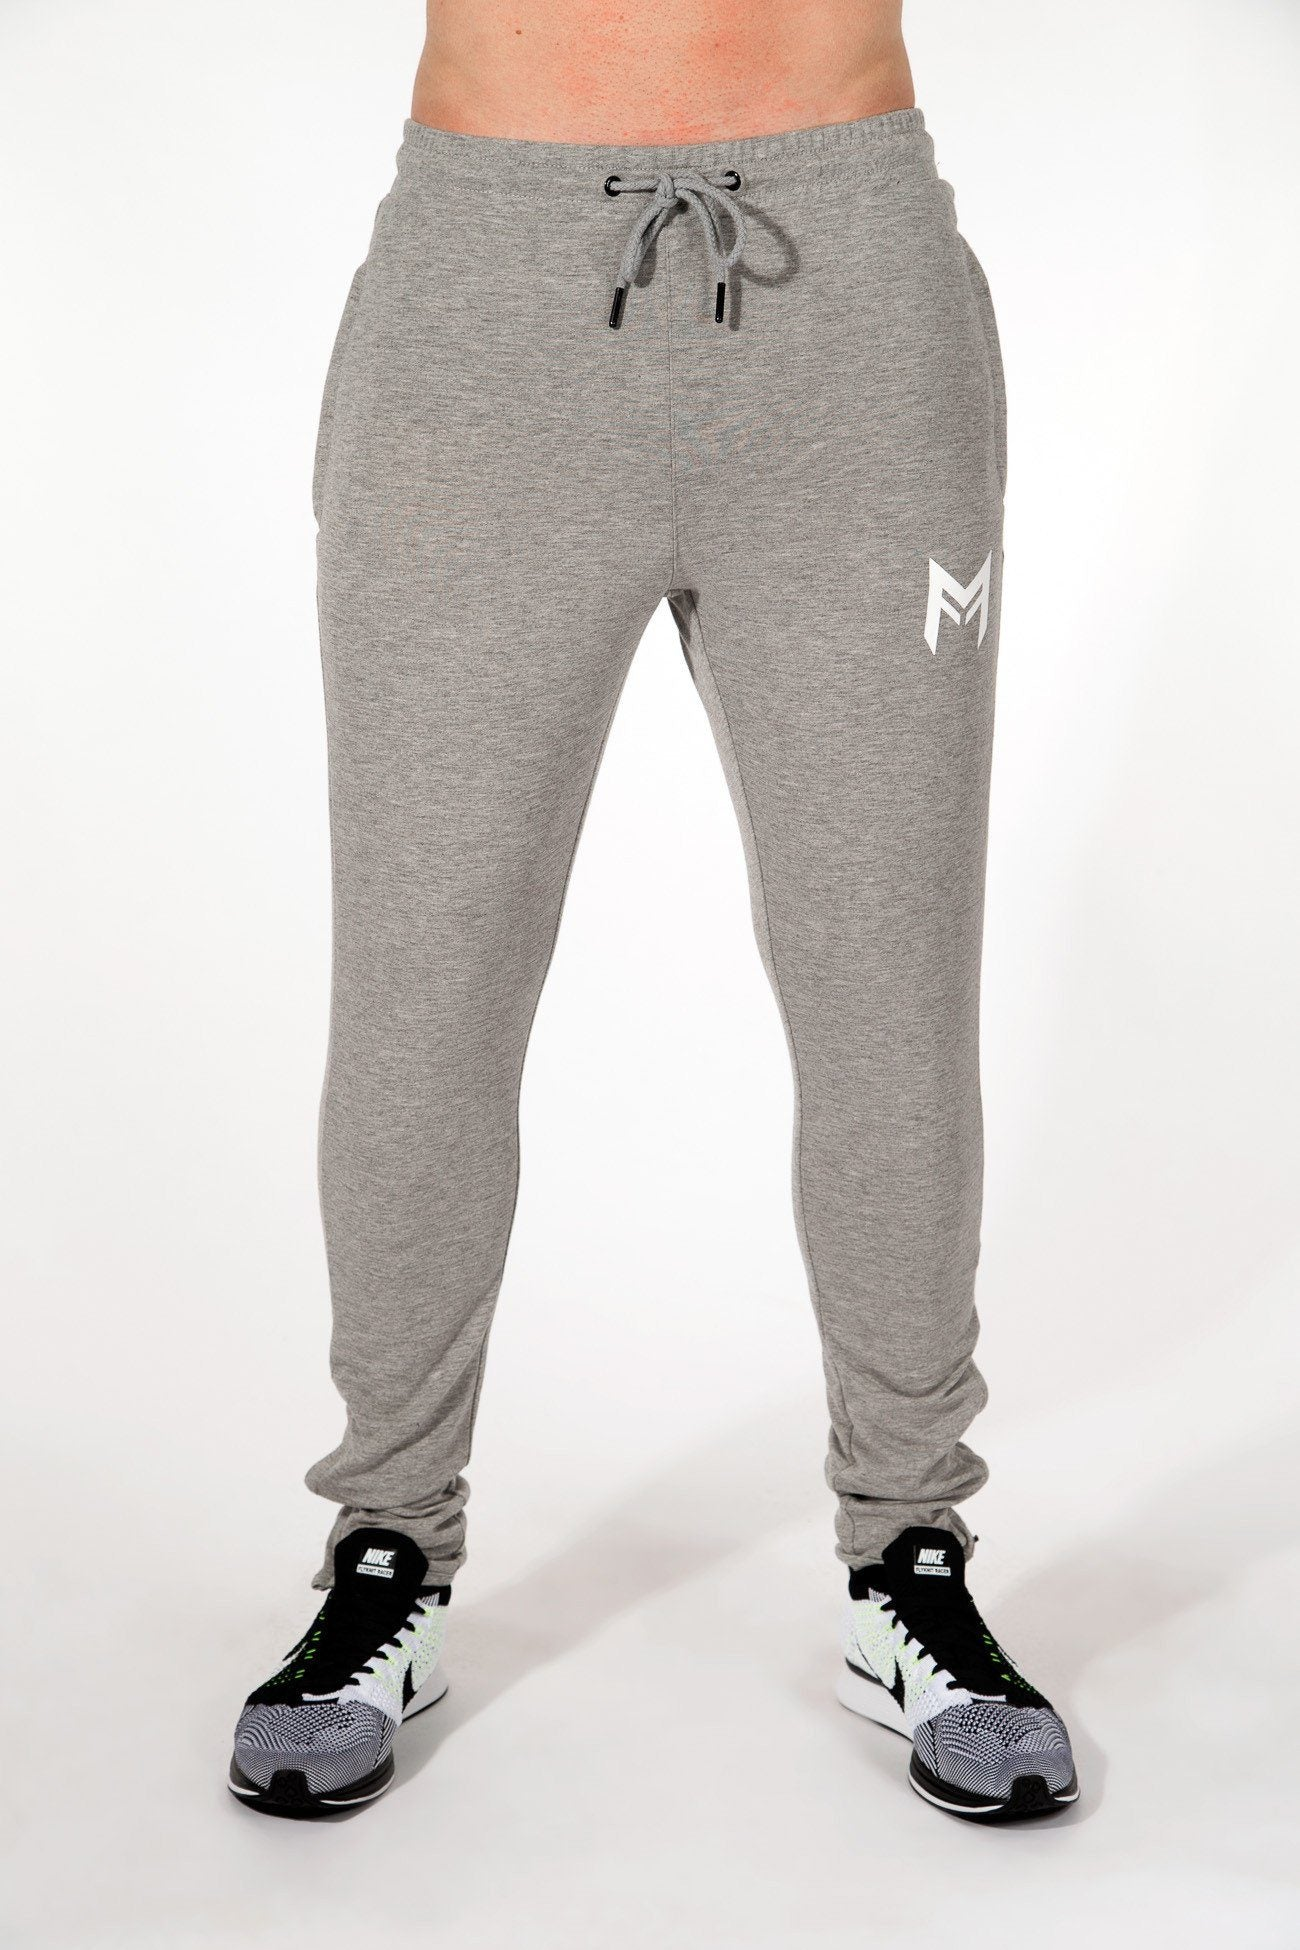 MFit Bottoms <br> Grey/White - Muscle Fitness Factory